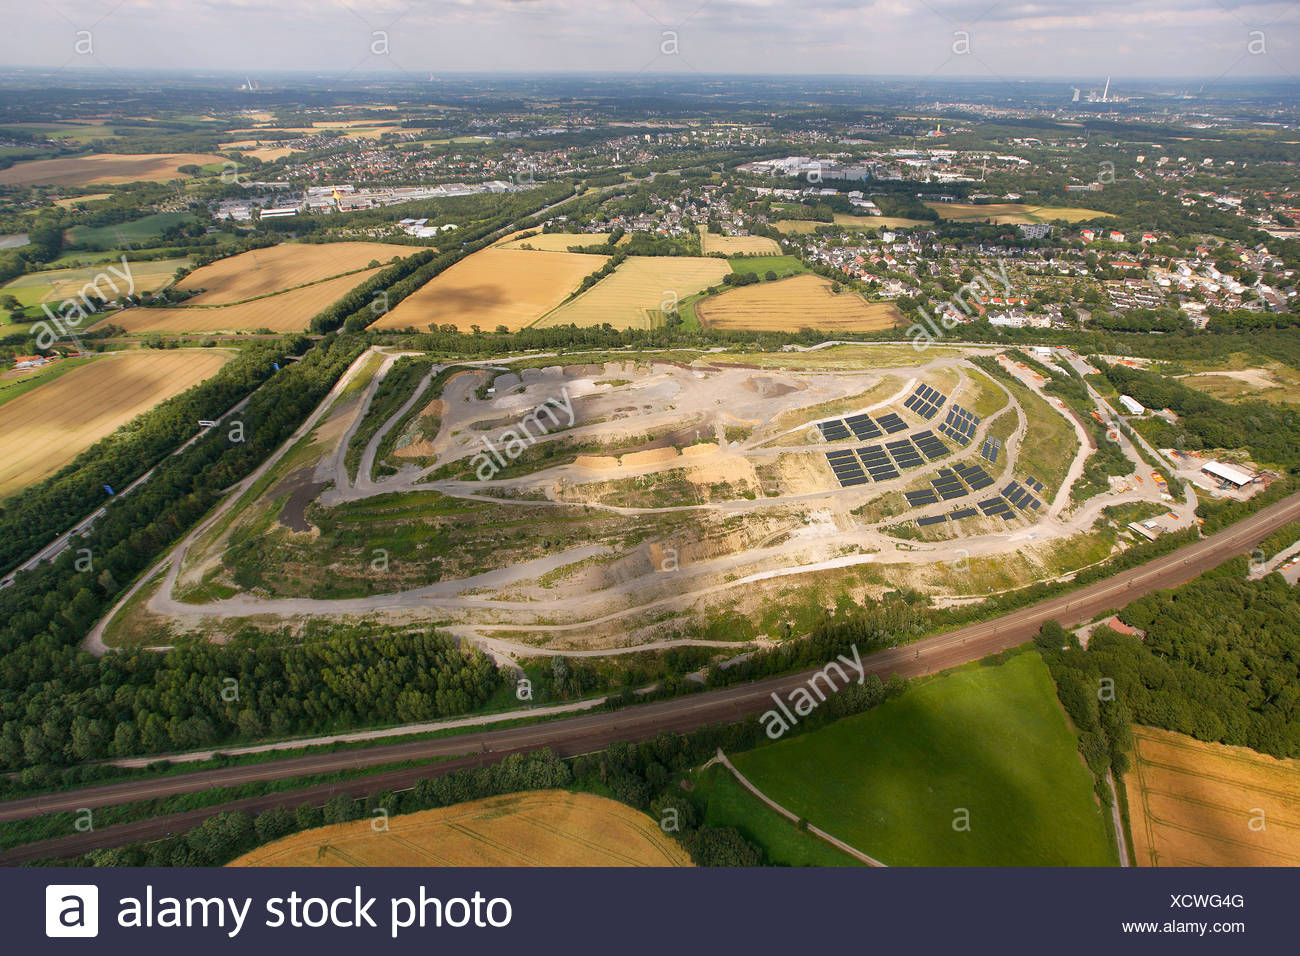 Aerial view, Kornharpen main waste disposal site with solar panels, Bochum, Ruhr Area, North Rhine-Westphalia, Germany, Europe - Stock Image